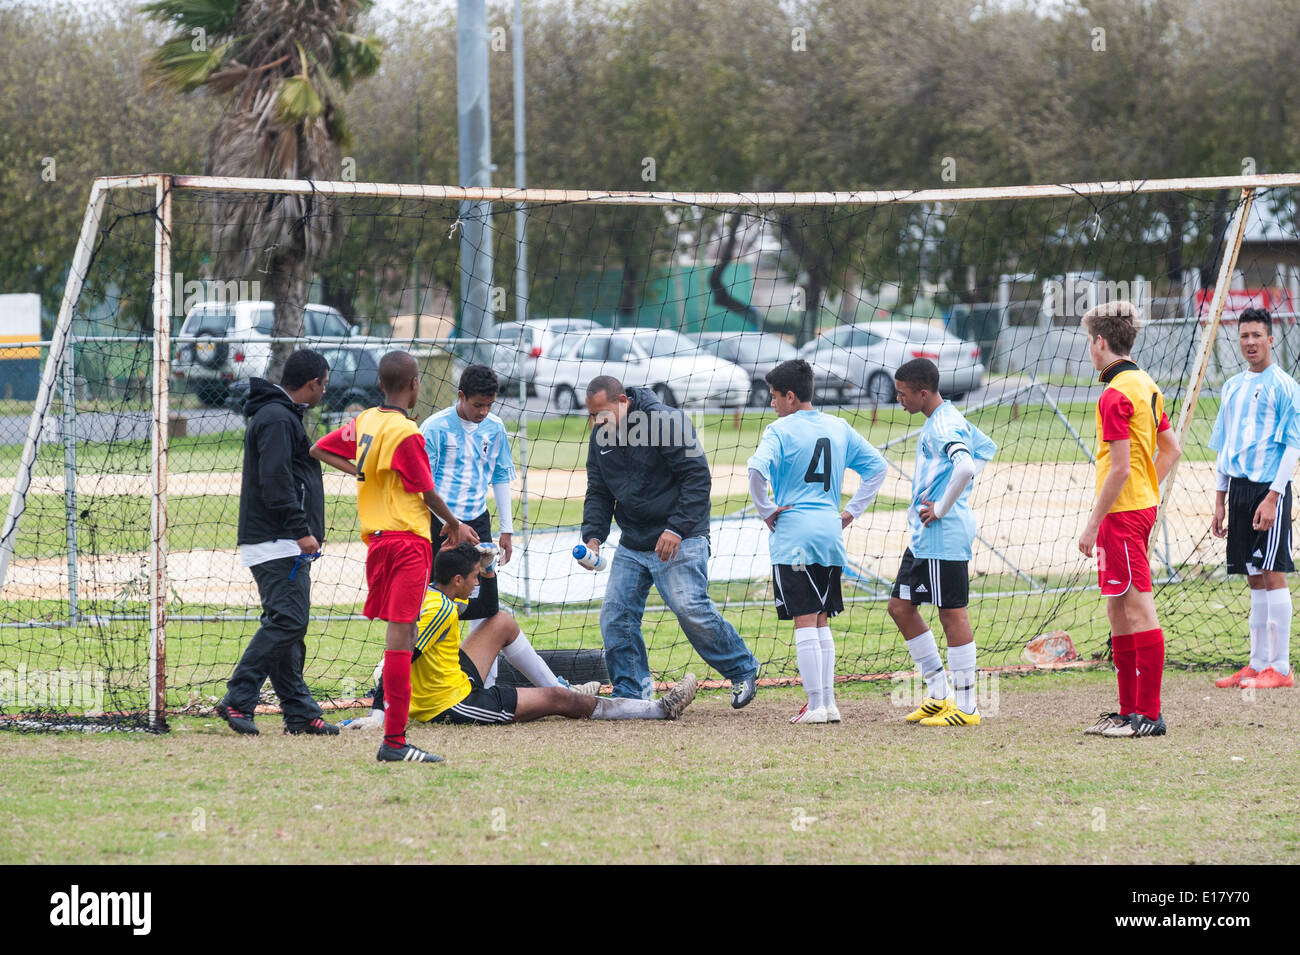 Injured junior football goalkeeper receiving treatment, players watching, Cape Town, South Africa - Stock Image